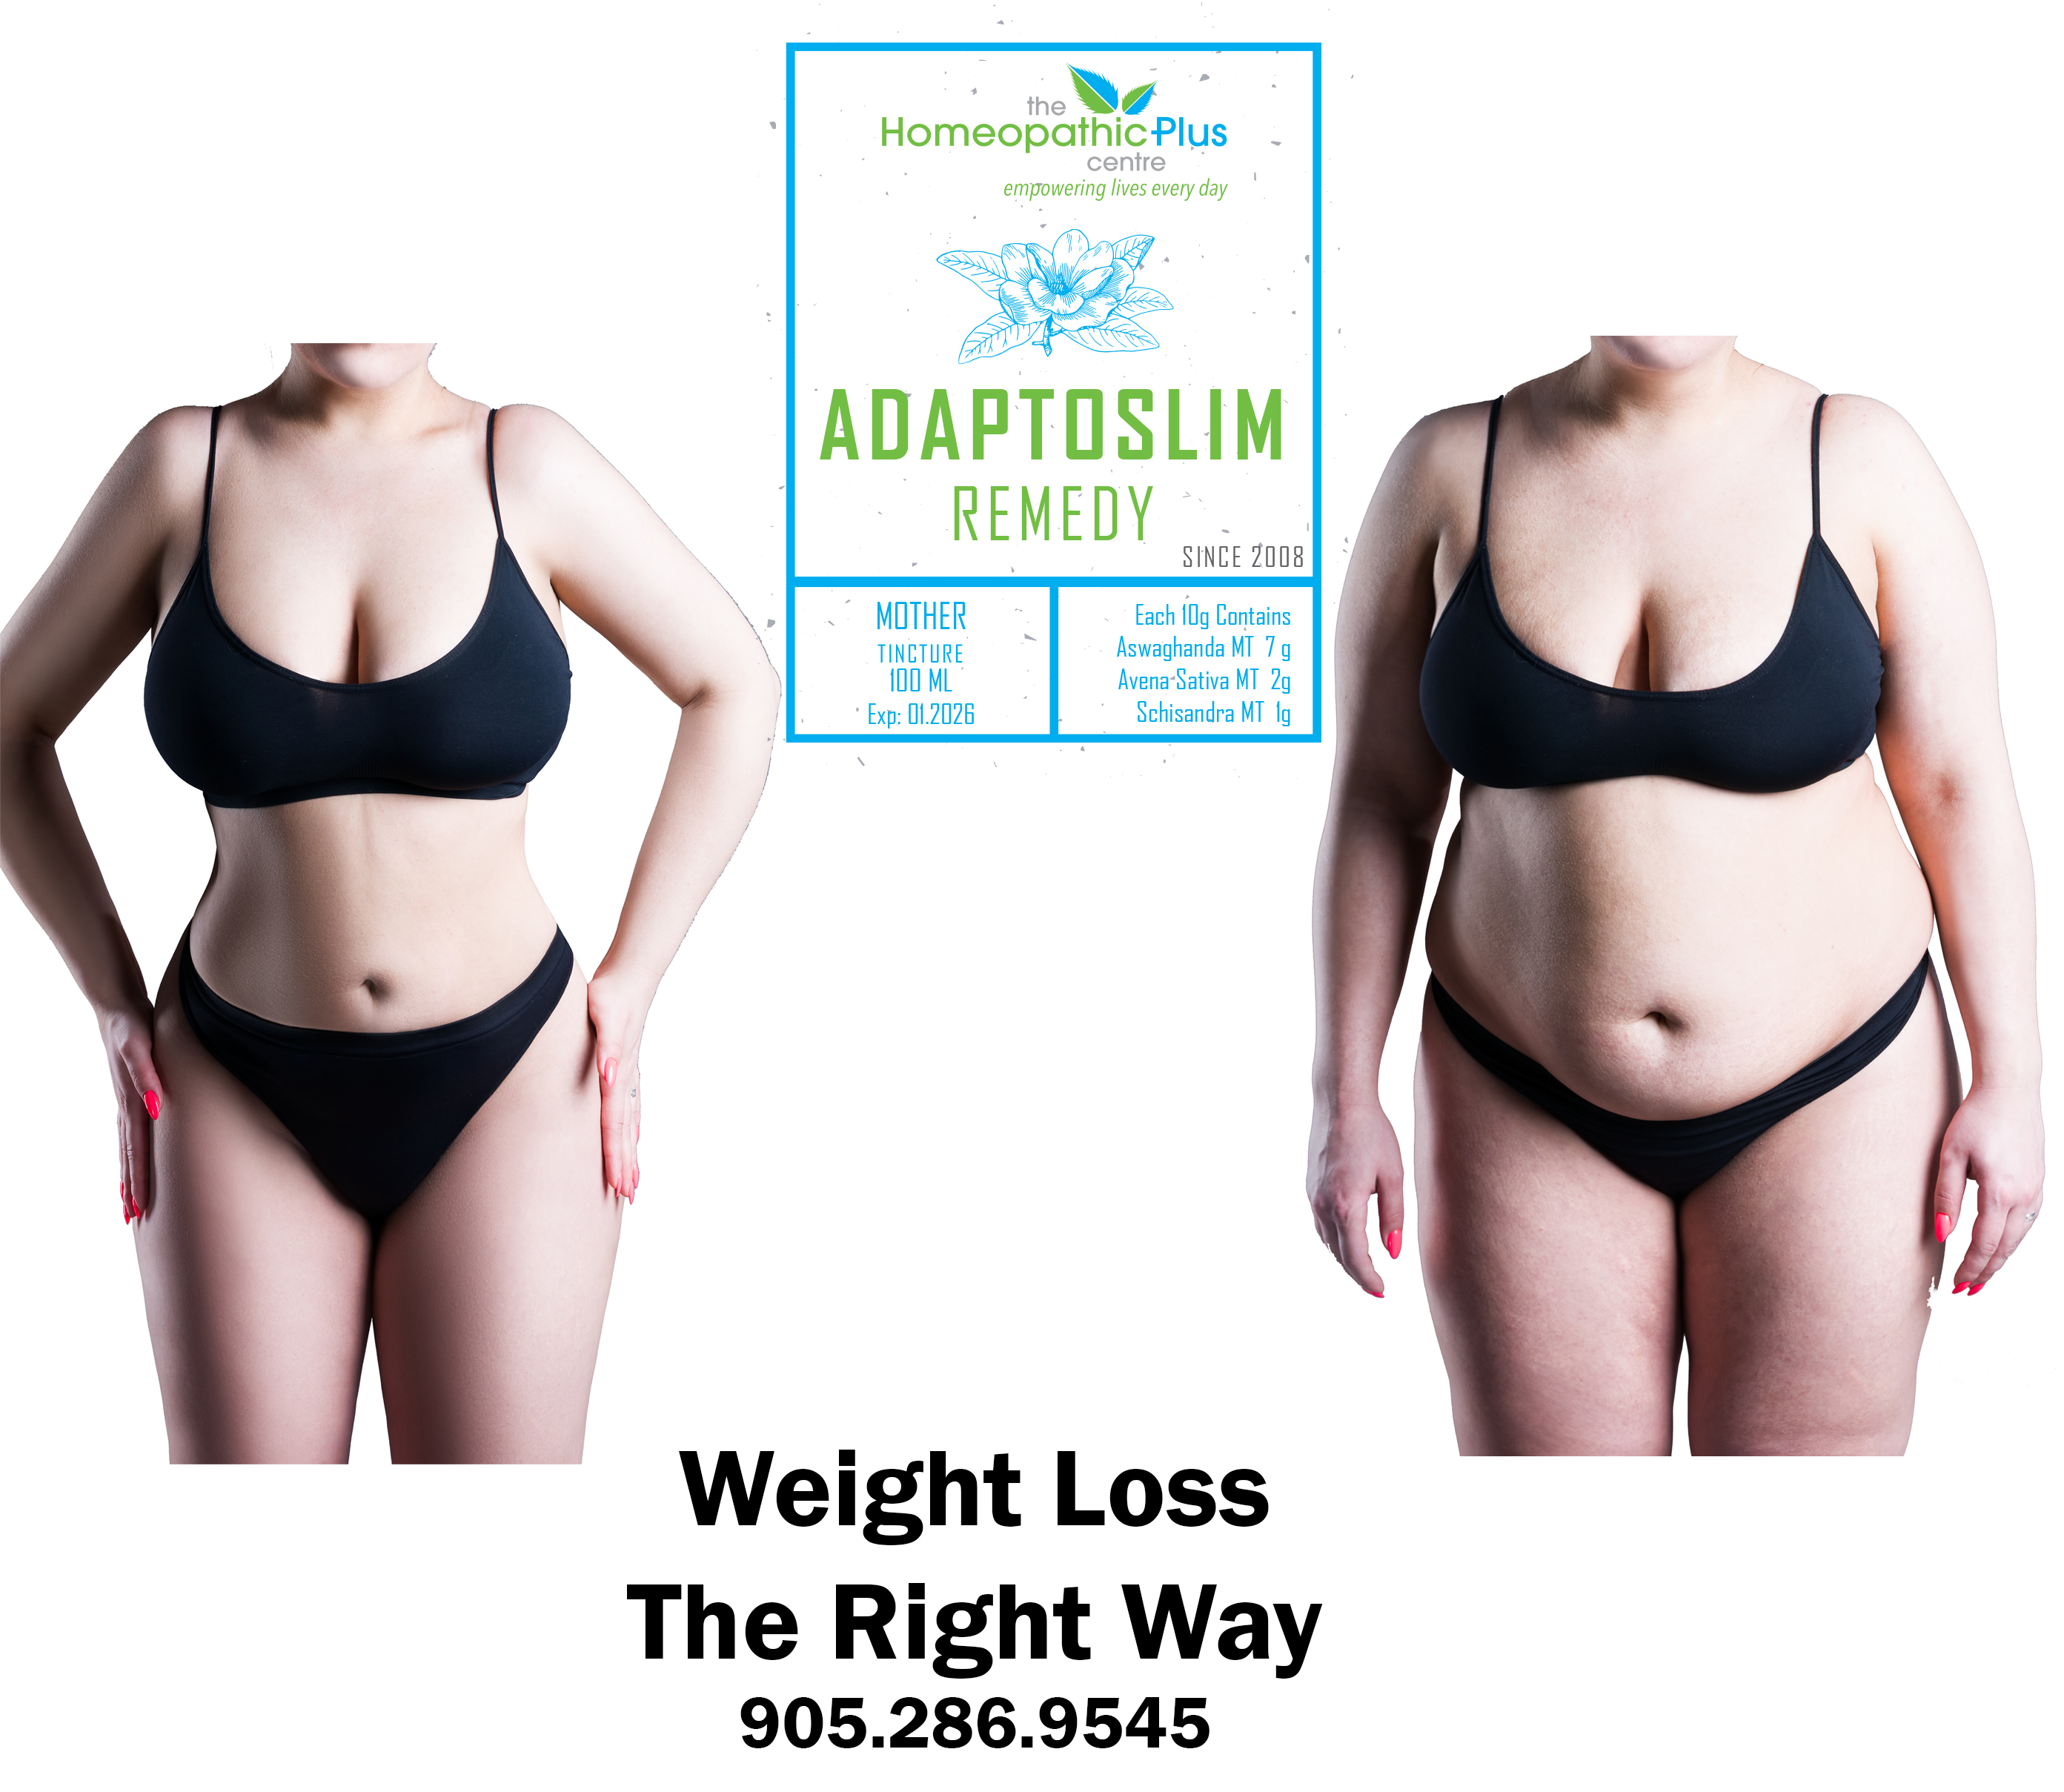 The Right Way: Weight Loss